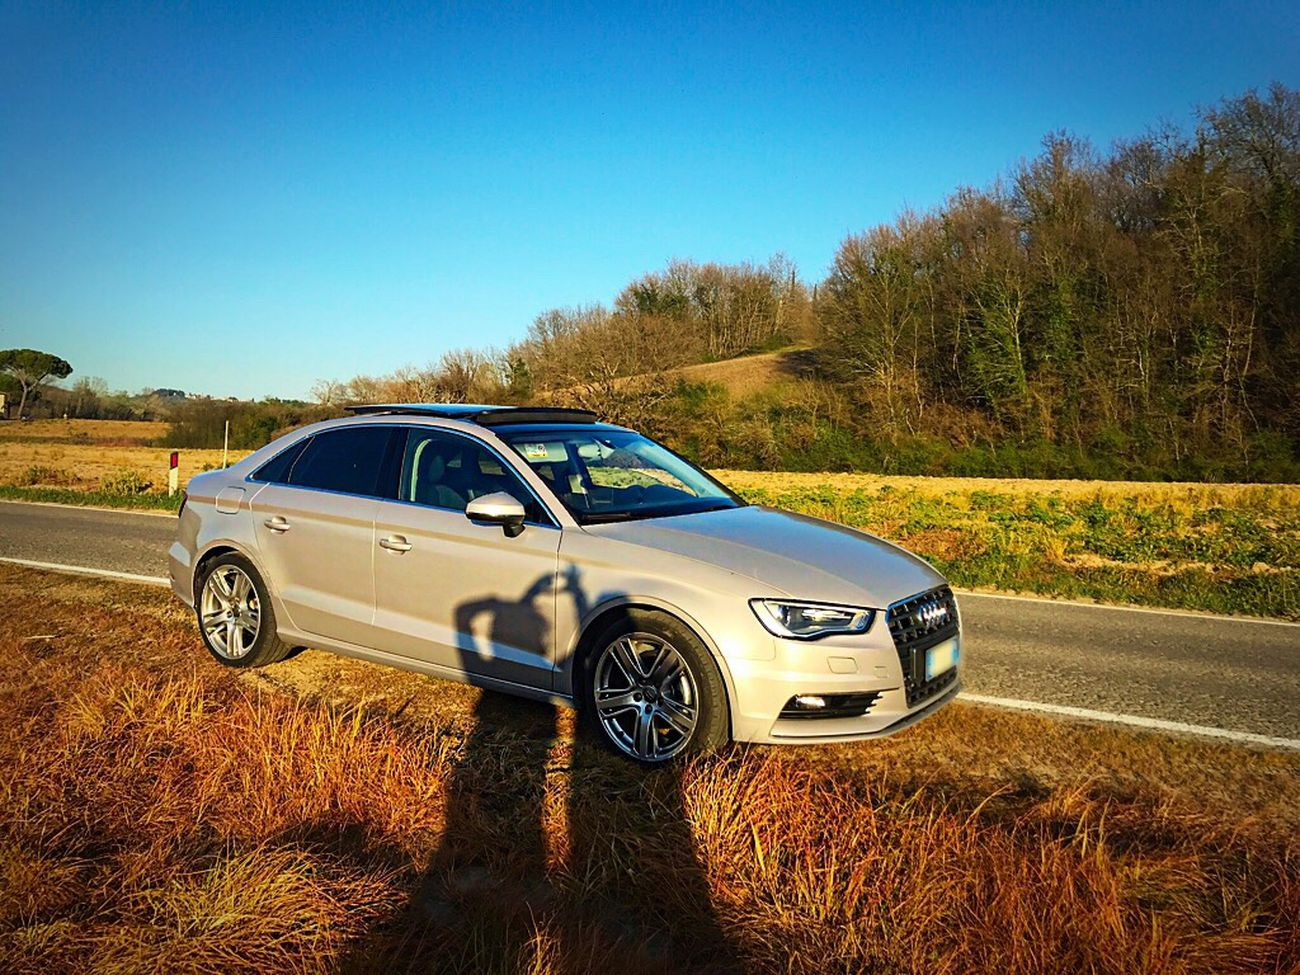 My Car & My Love ; Blu Sky Nature Landscape Sunlight Audi